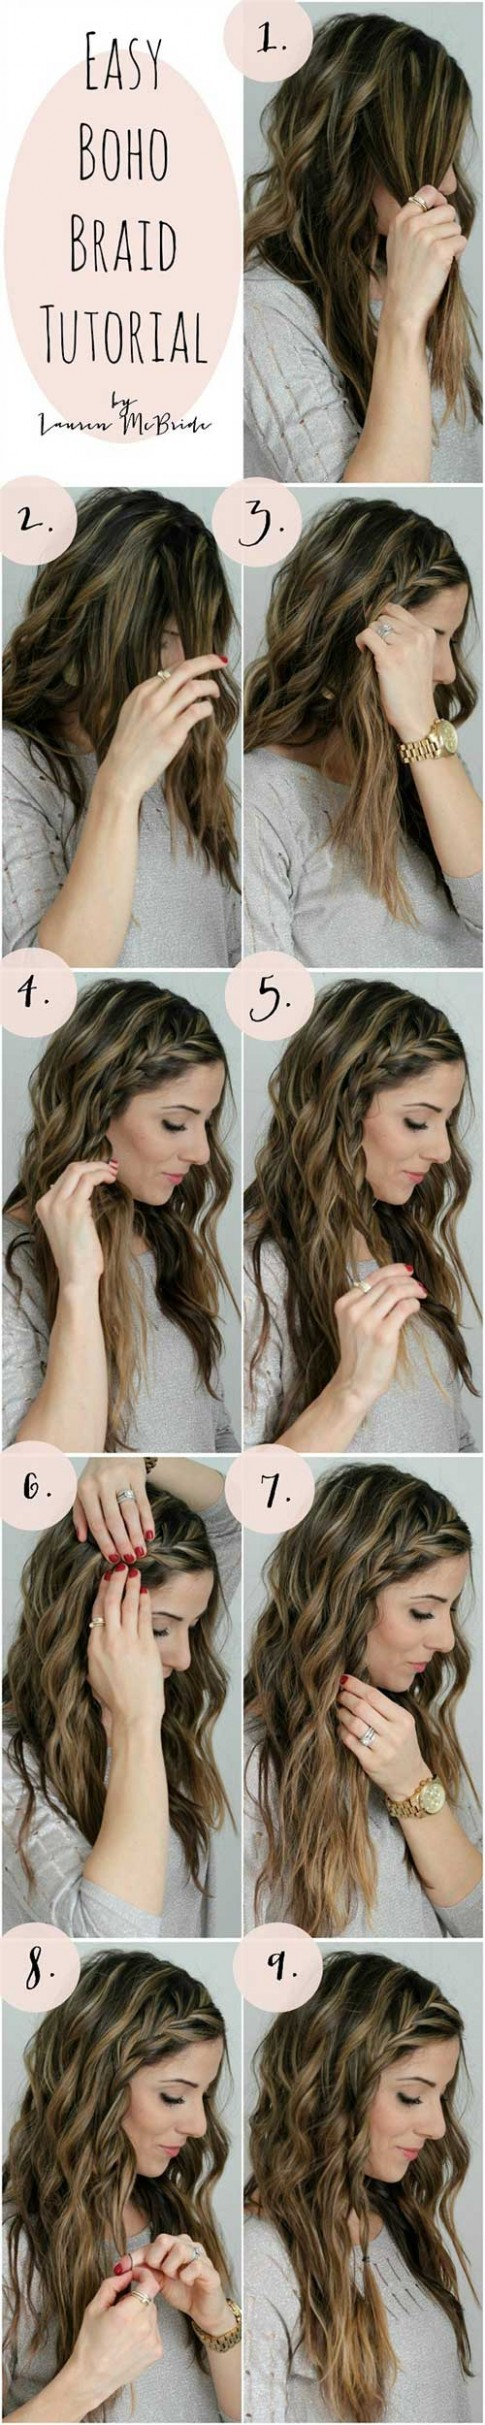 9 Awesome Hairstyles For Girls With Long Hair Cute Hairstyles For Girls With Long Hair